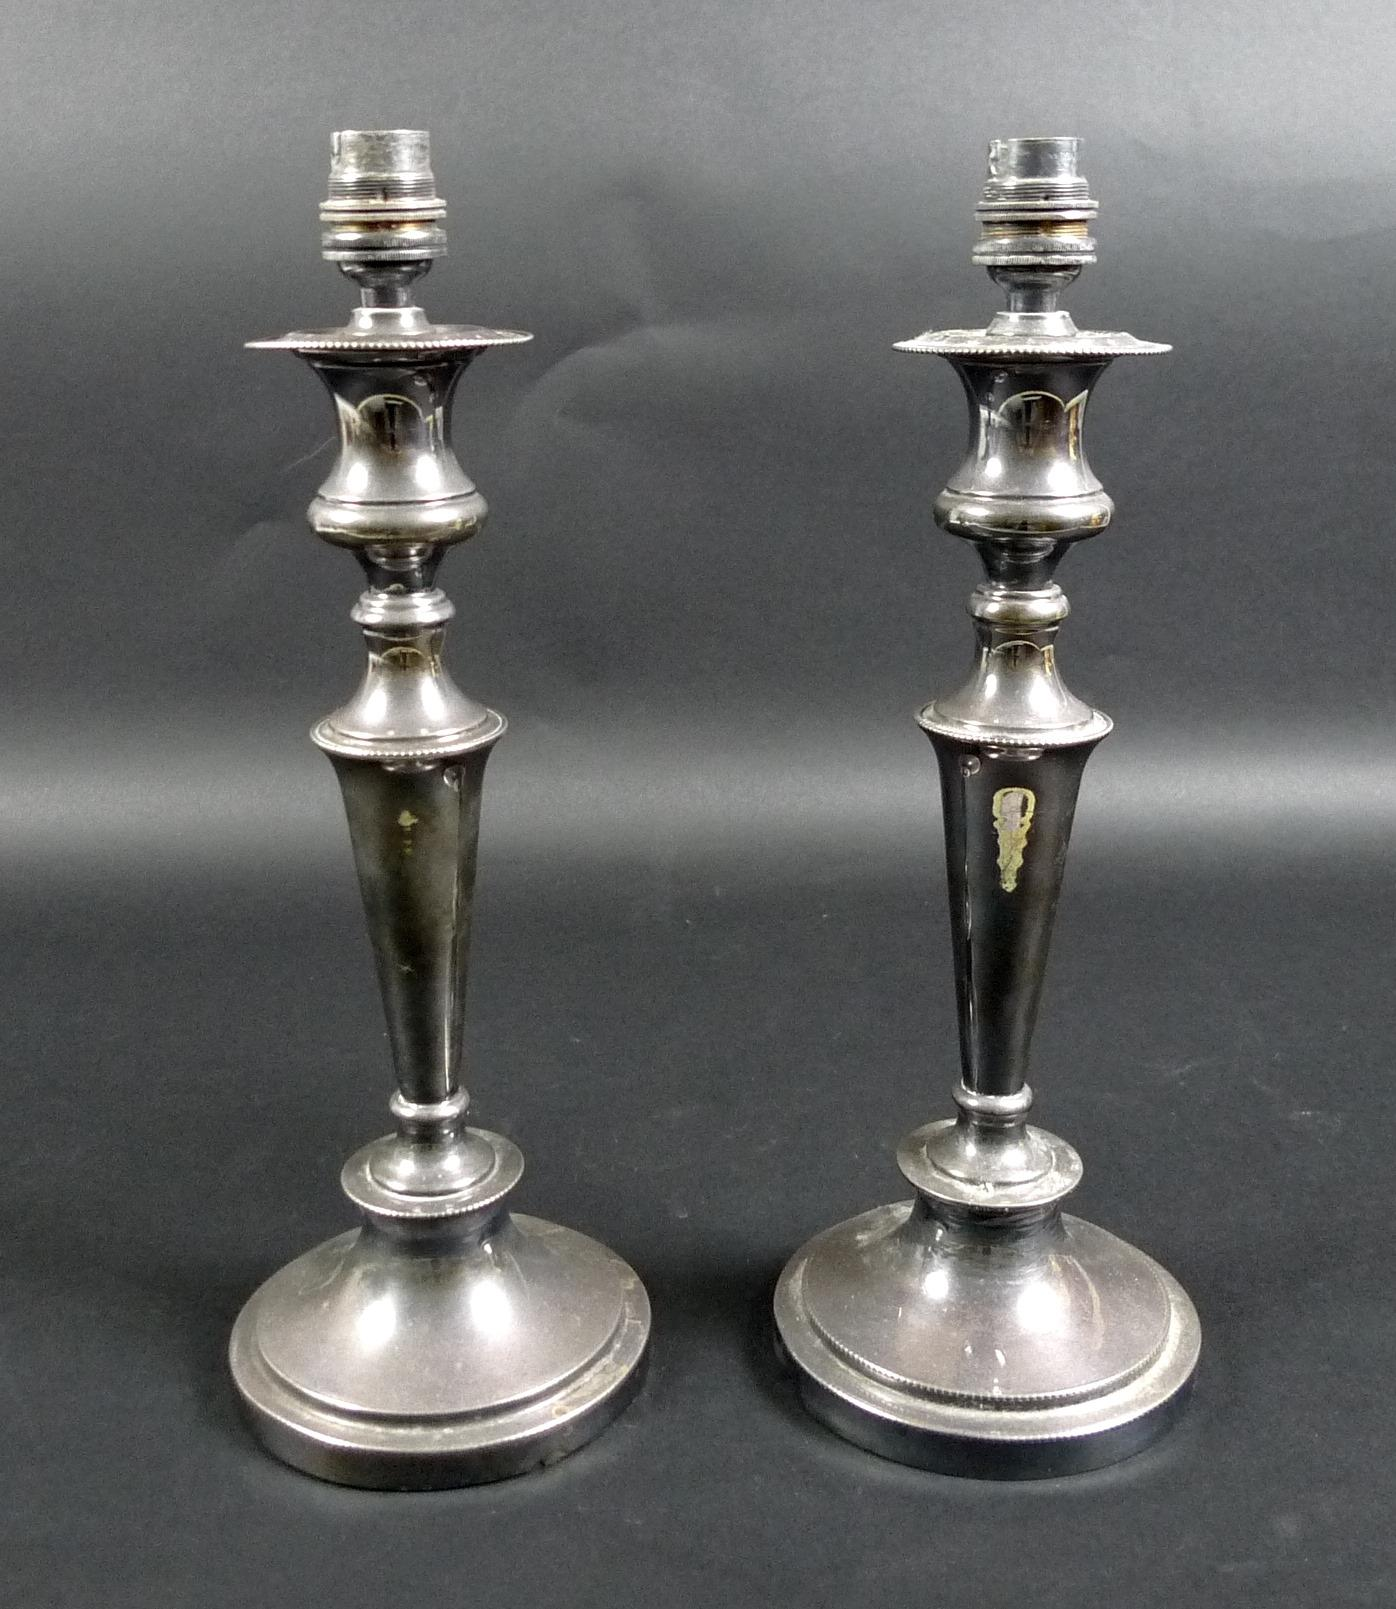 Lot 3 - A pair of silver plated table lamps, converted from candlesticks with removable drip trays, of